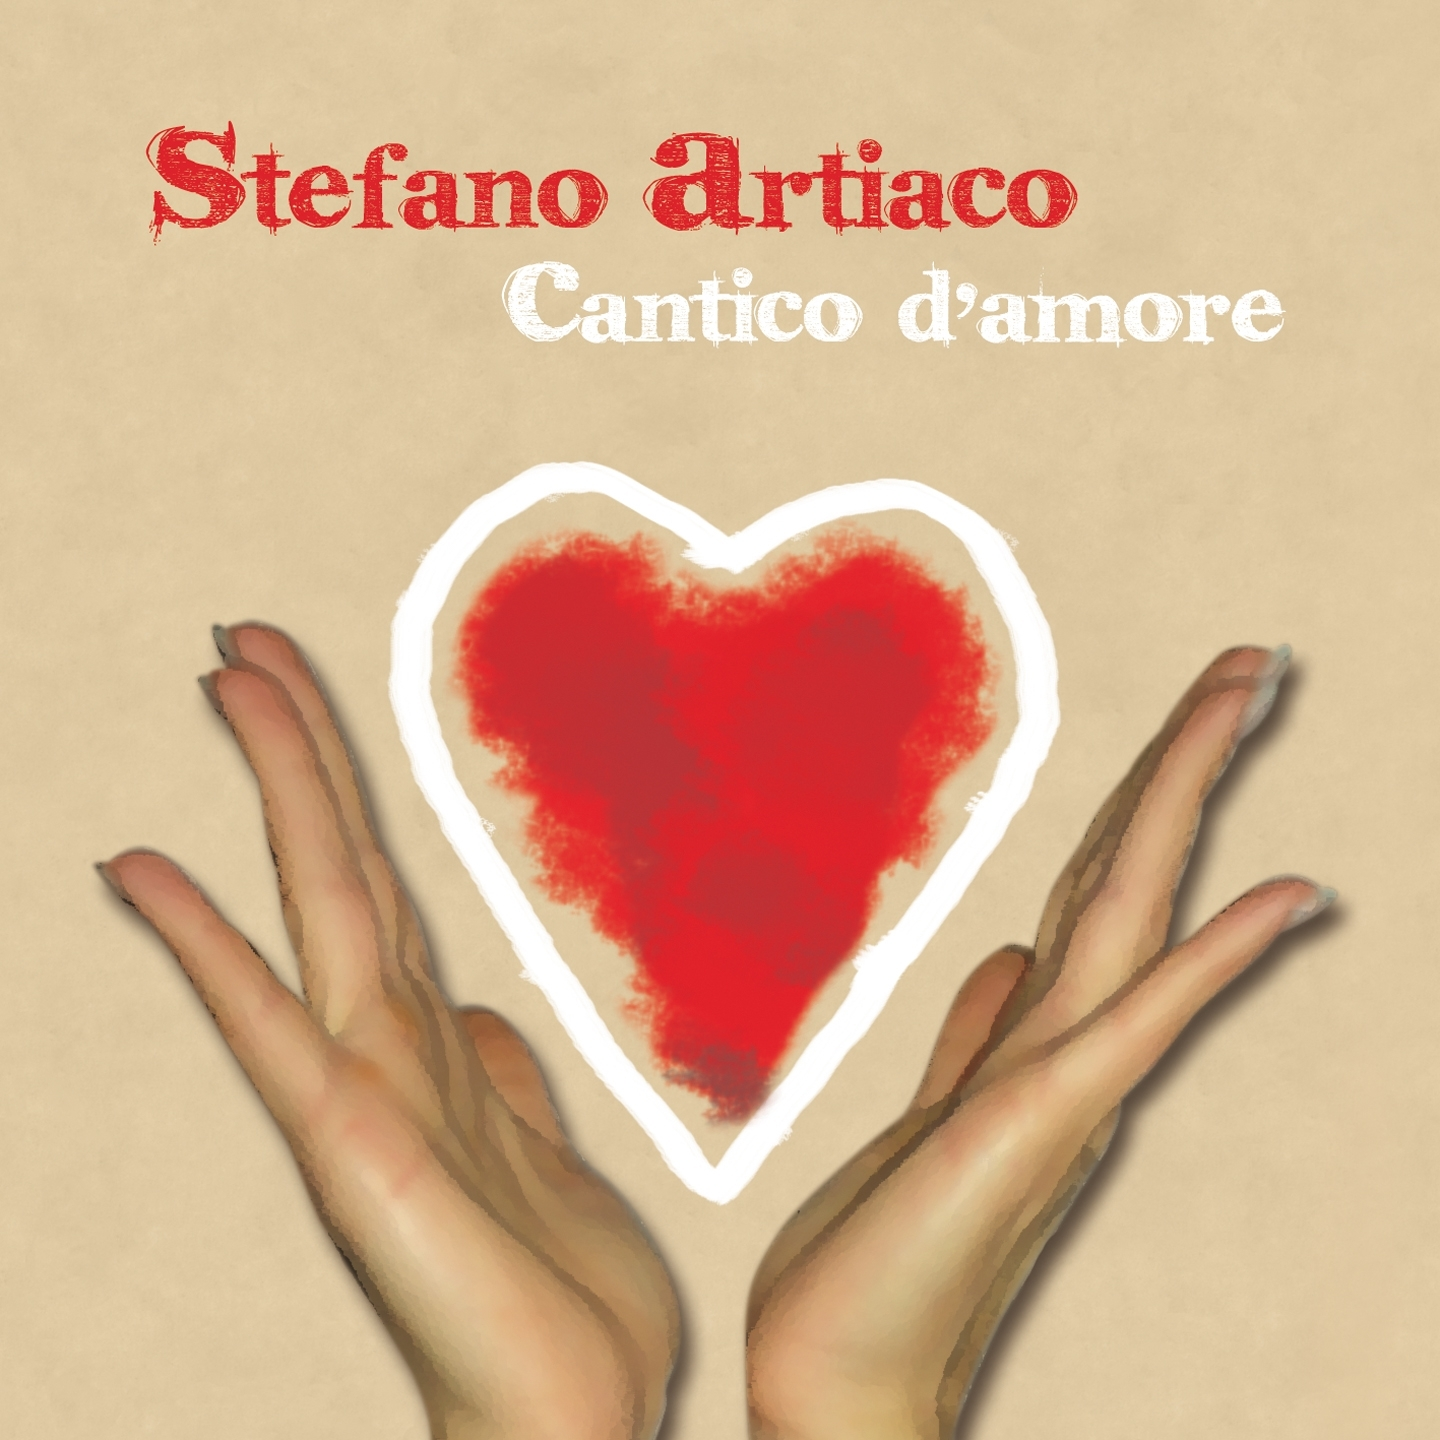 Cantico d'amore